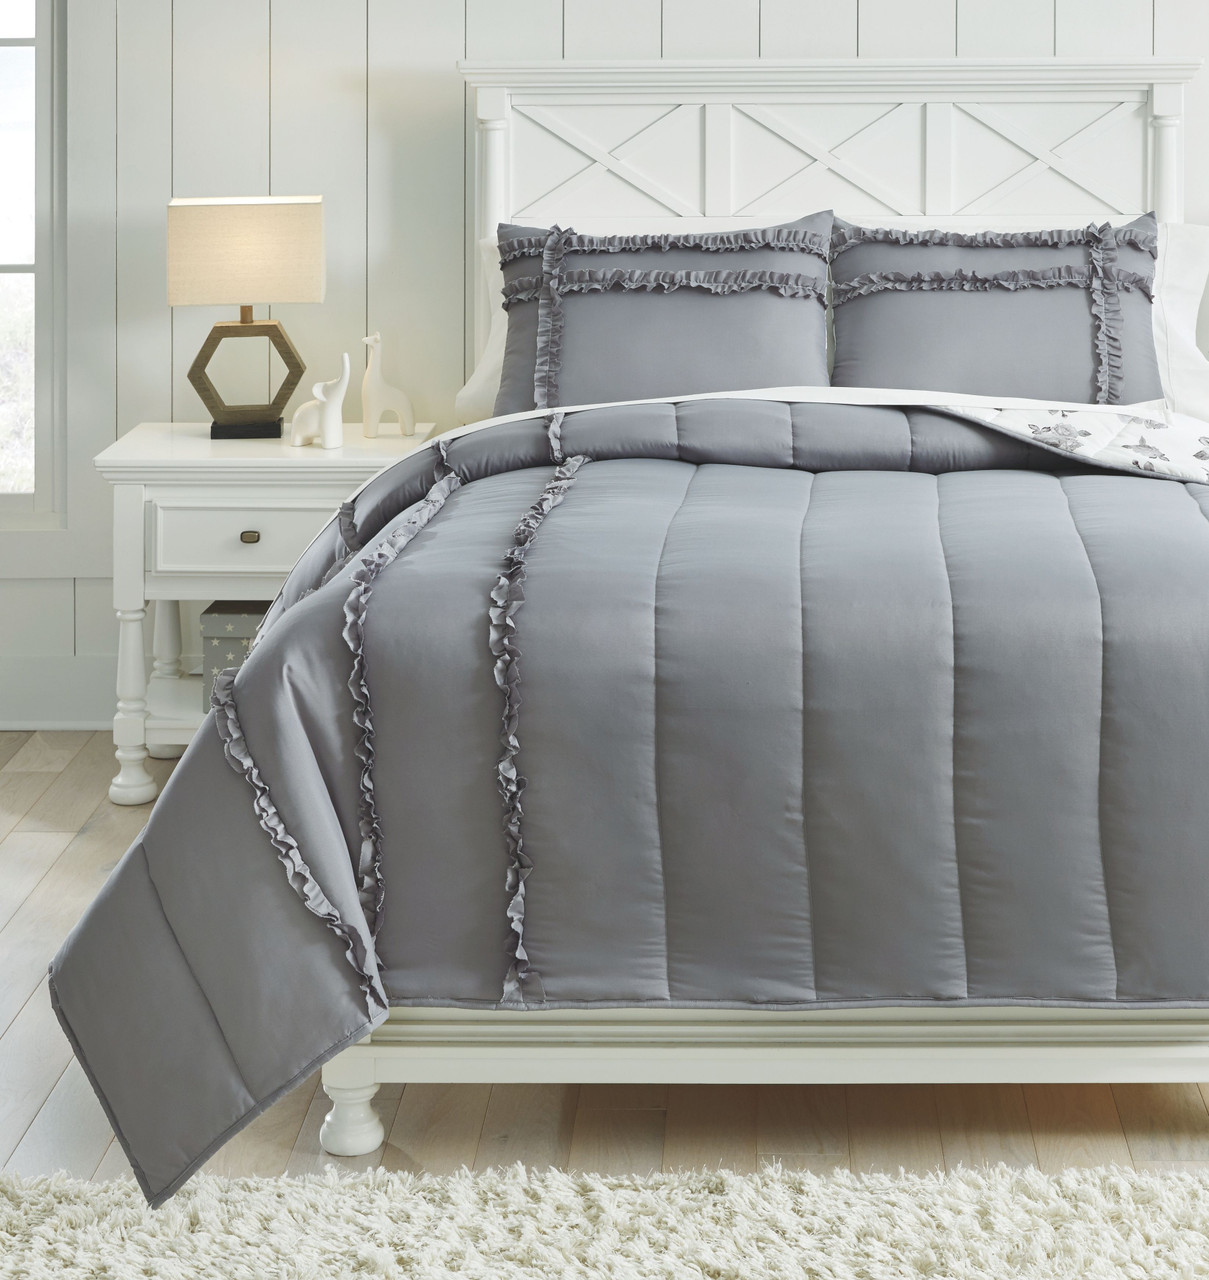 The Meghdad Gray White Full Comforter Set Available At Barnett And Swann In Athens Al